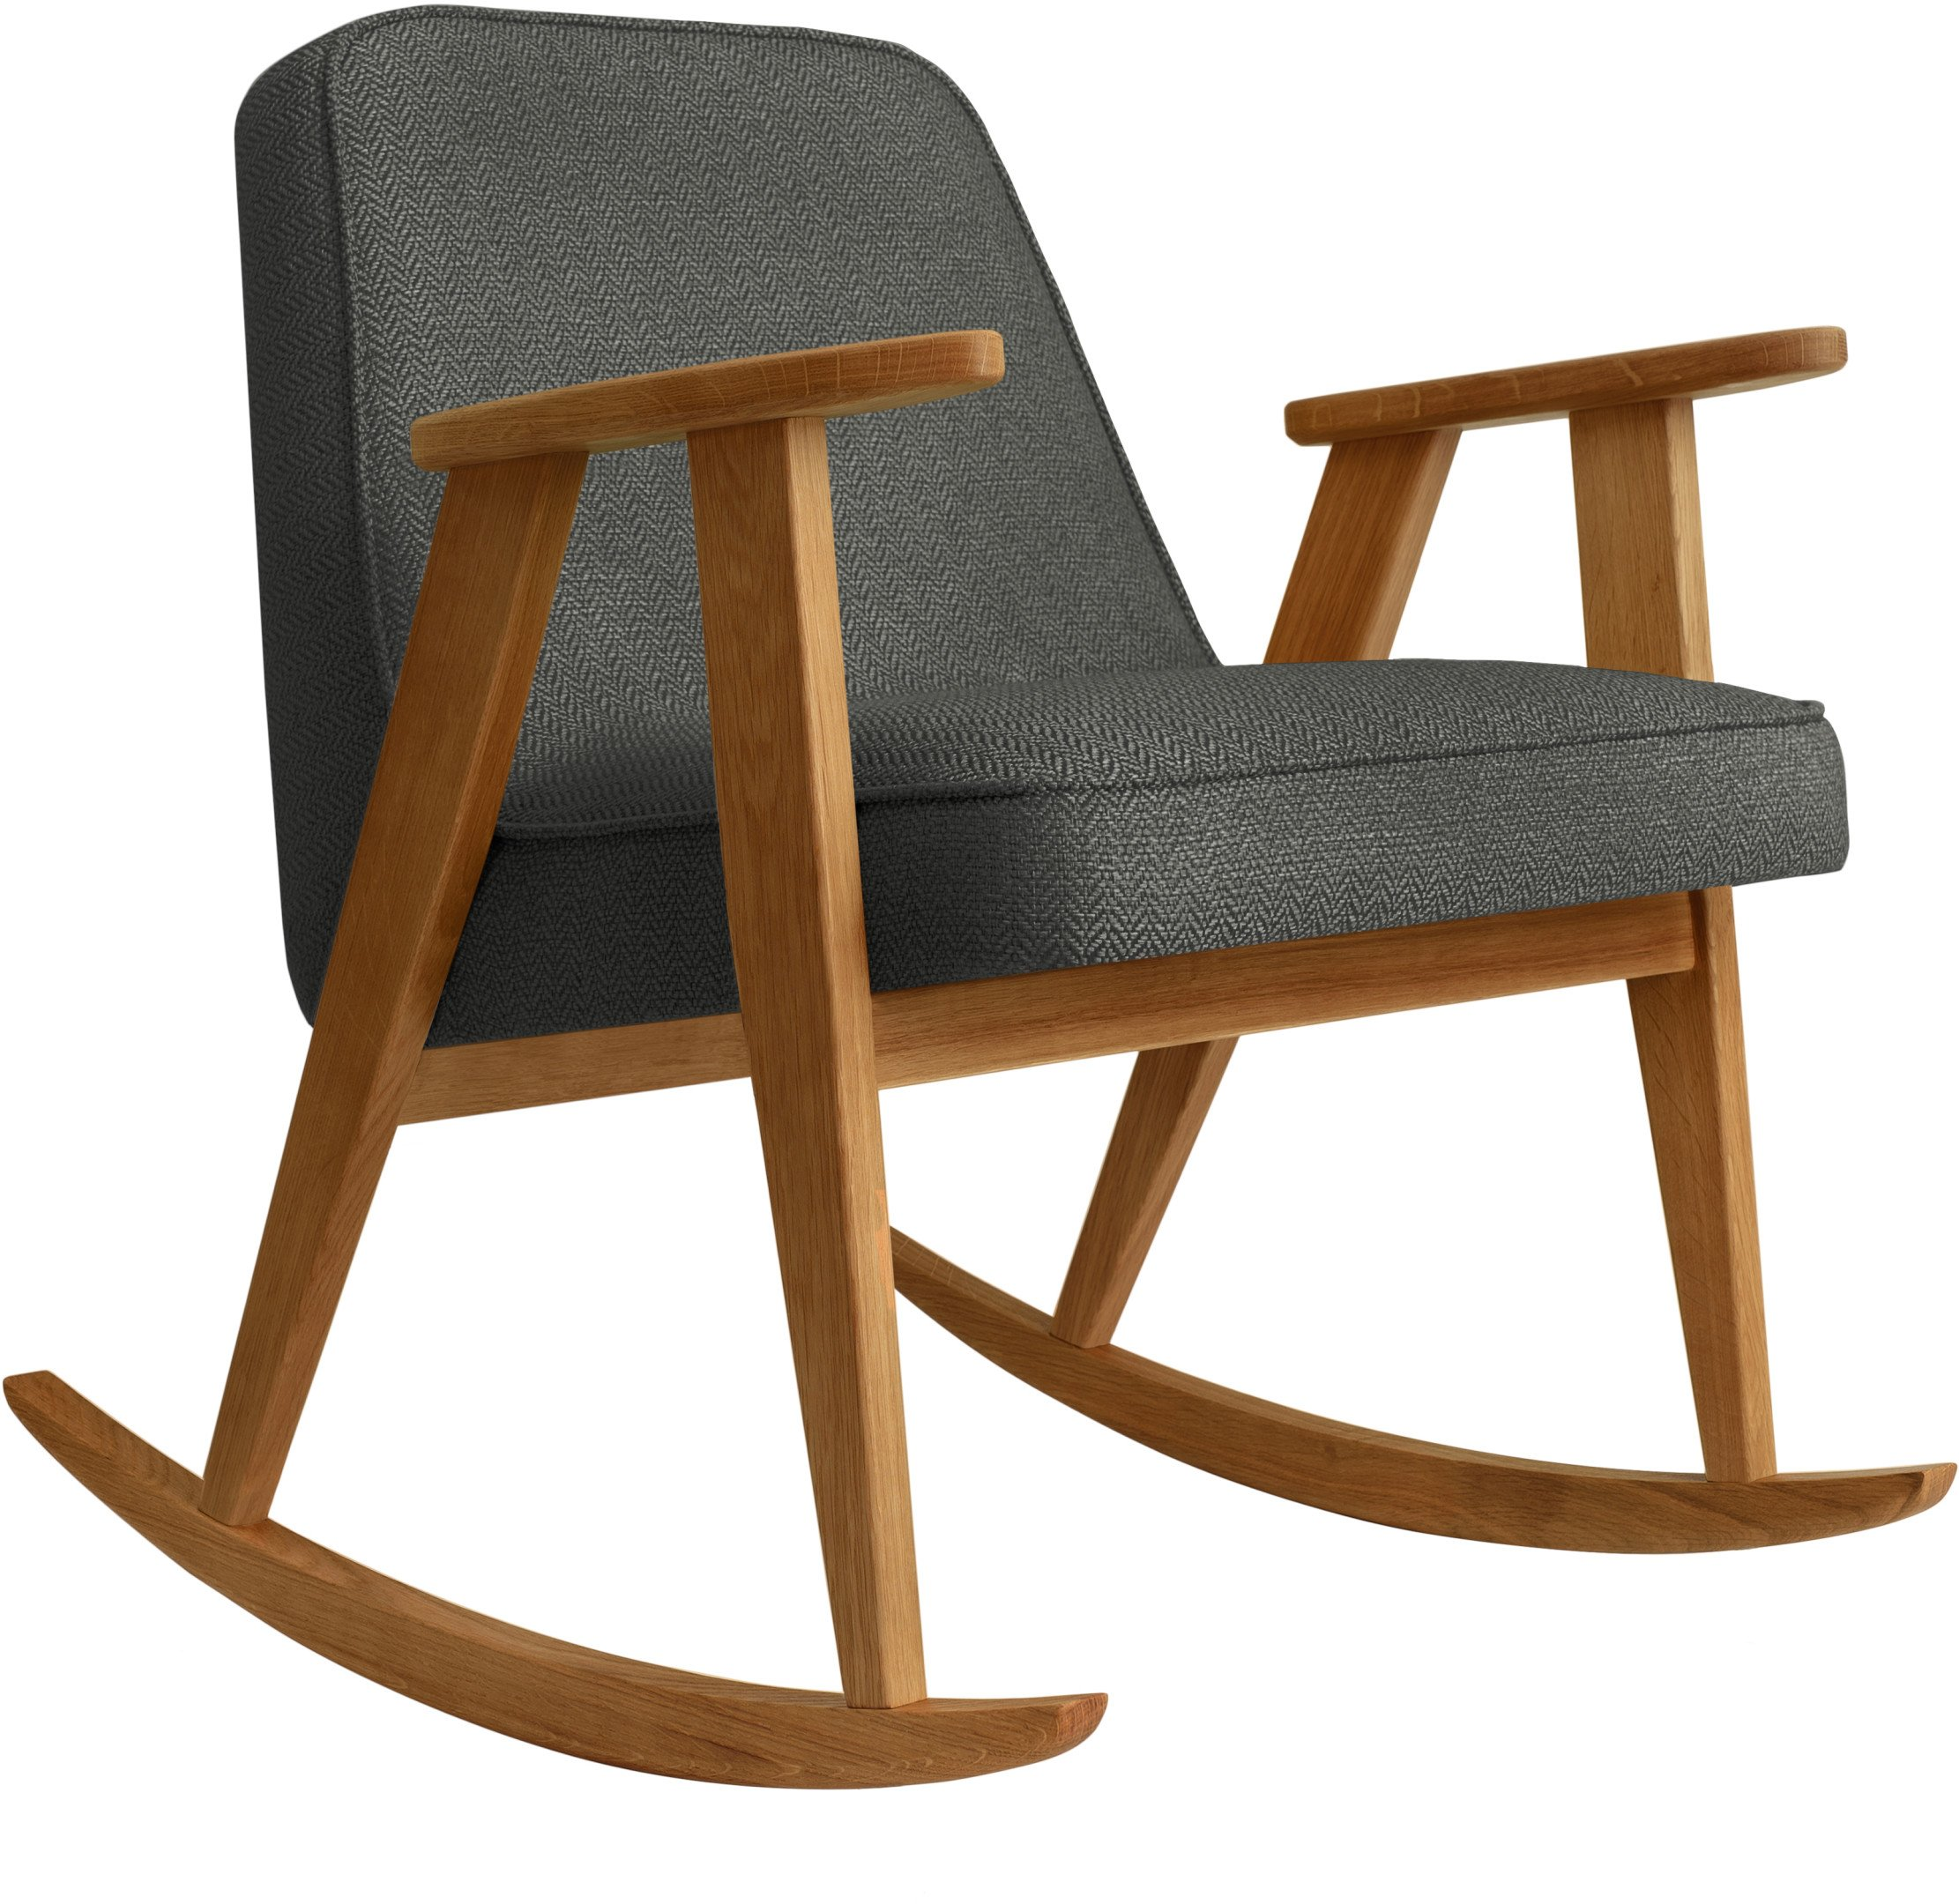 366 Rocking Chair Tweed Black (dark oak) by Józef Chierowski